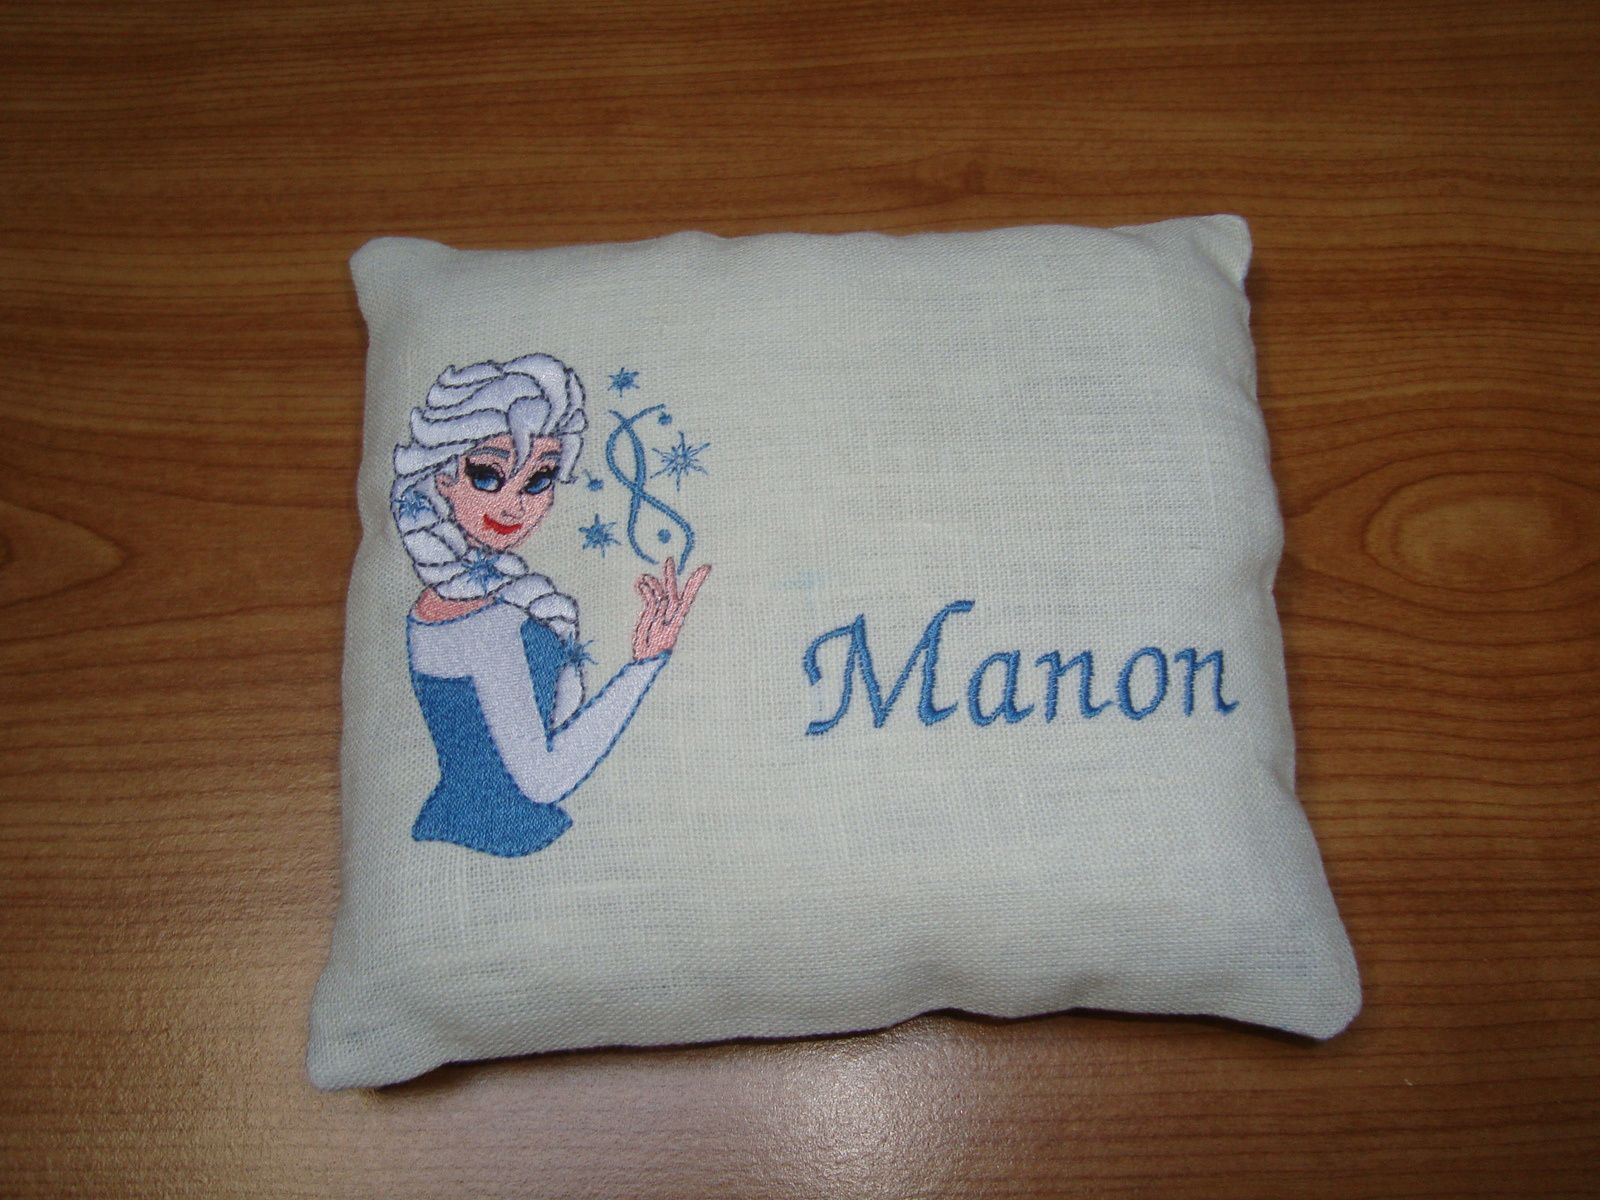 Broderie machine : Elsa, reine des neiges